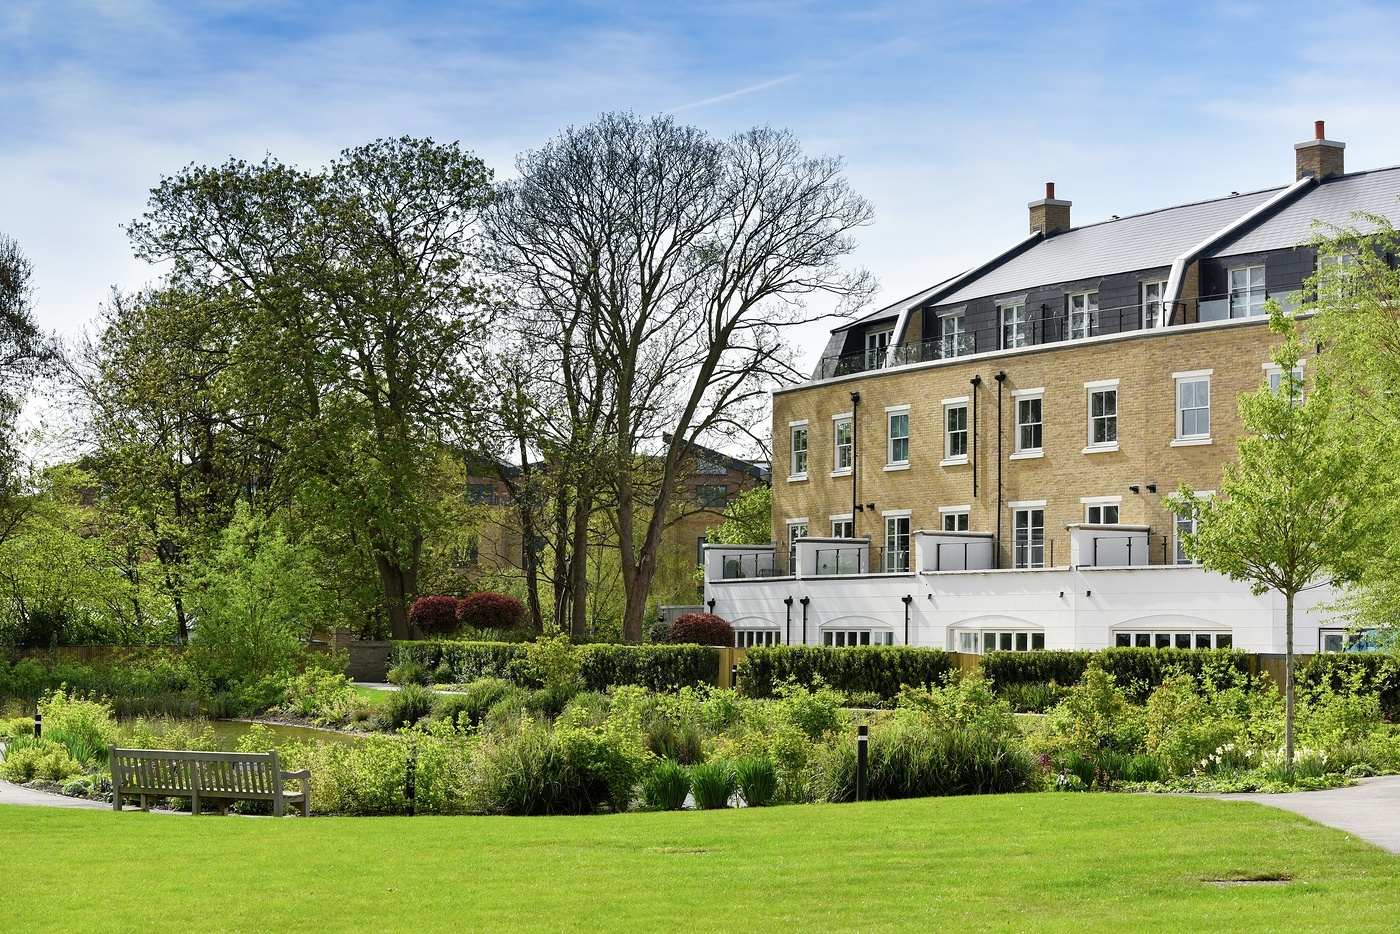 5 Bedroom Townhouse For Sale In Richmond Road Old Isleworth Tw7 London